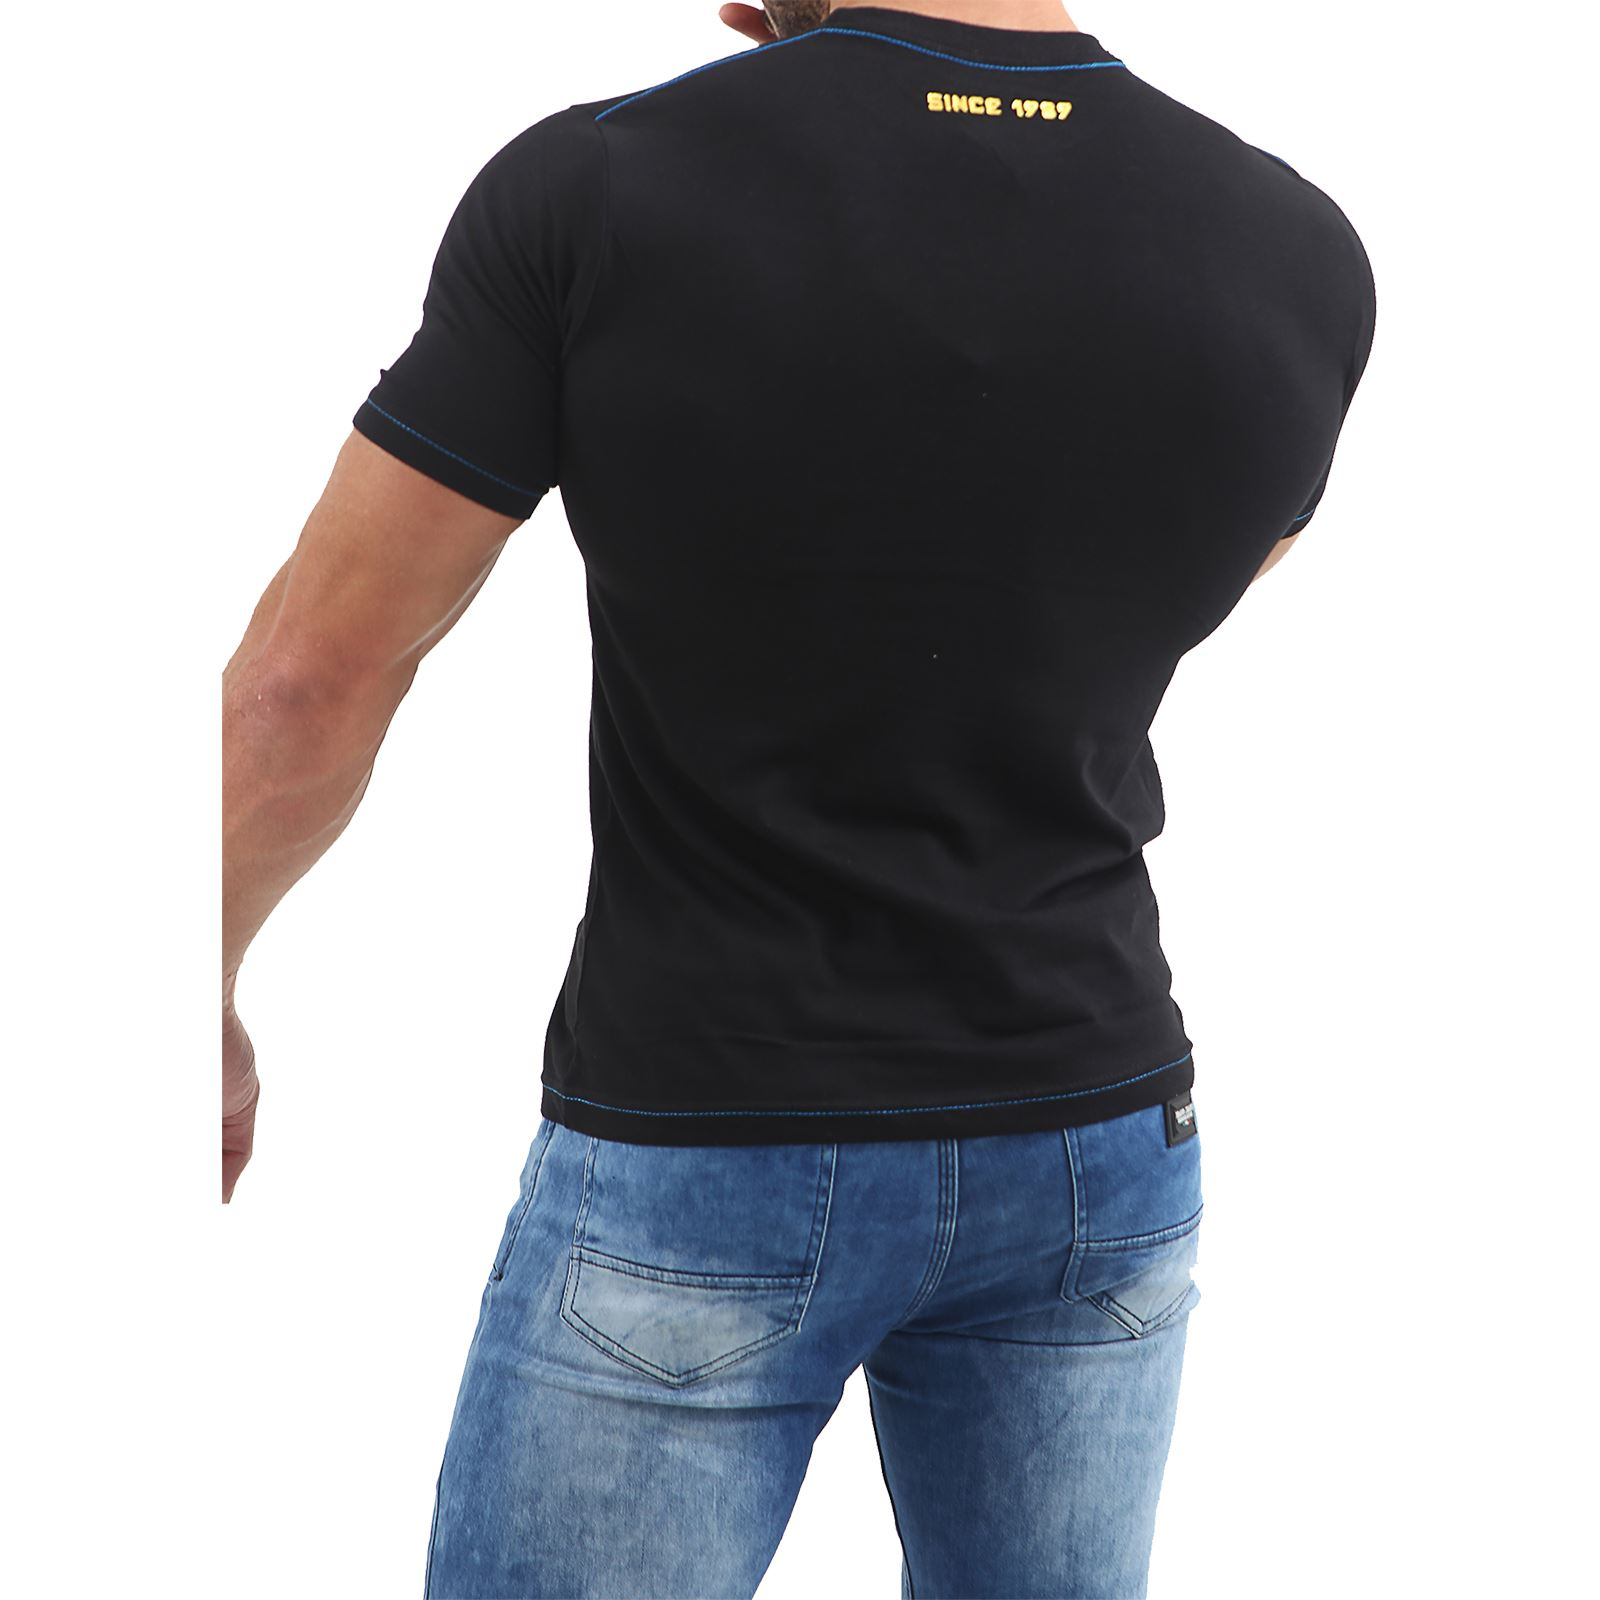 Mens-HLY-EQPT-Printed-T-Shirt-100-Cotton-Gym-Athletic-Training-Tee-Top-Summer thumbnail 6